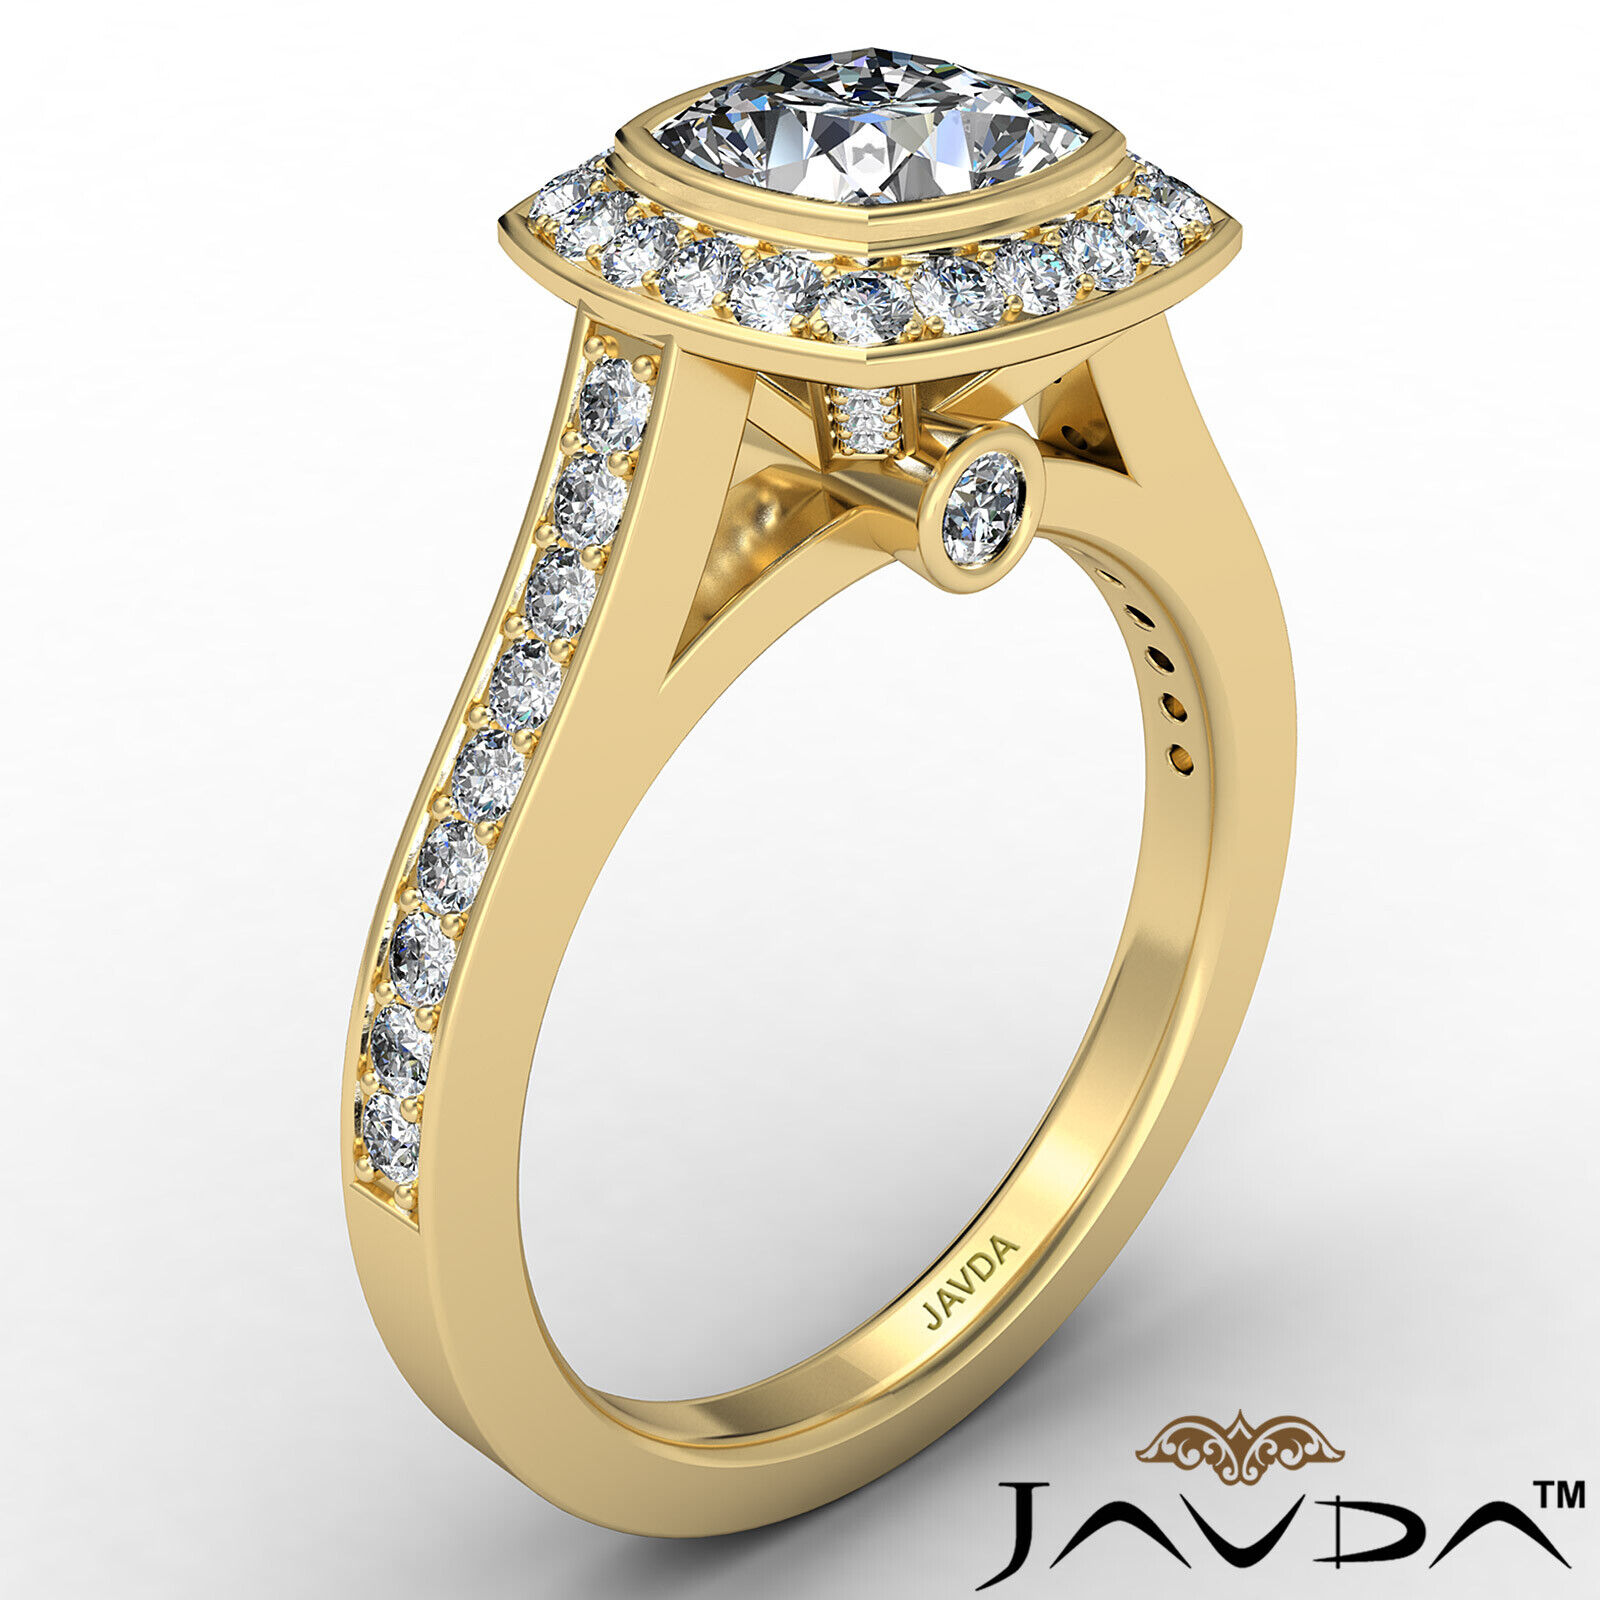 Micro Halo Cushion Diamond Engagement Ring GIA H Color & VS1 clarity 1.4 ctw 4